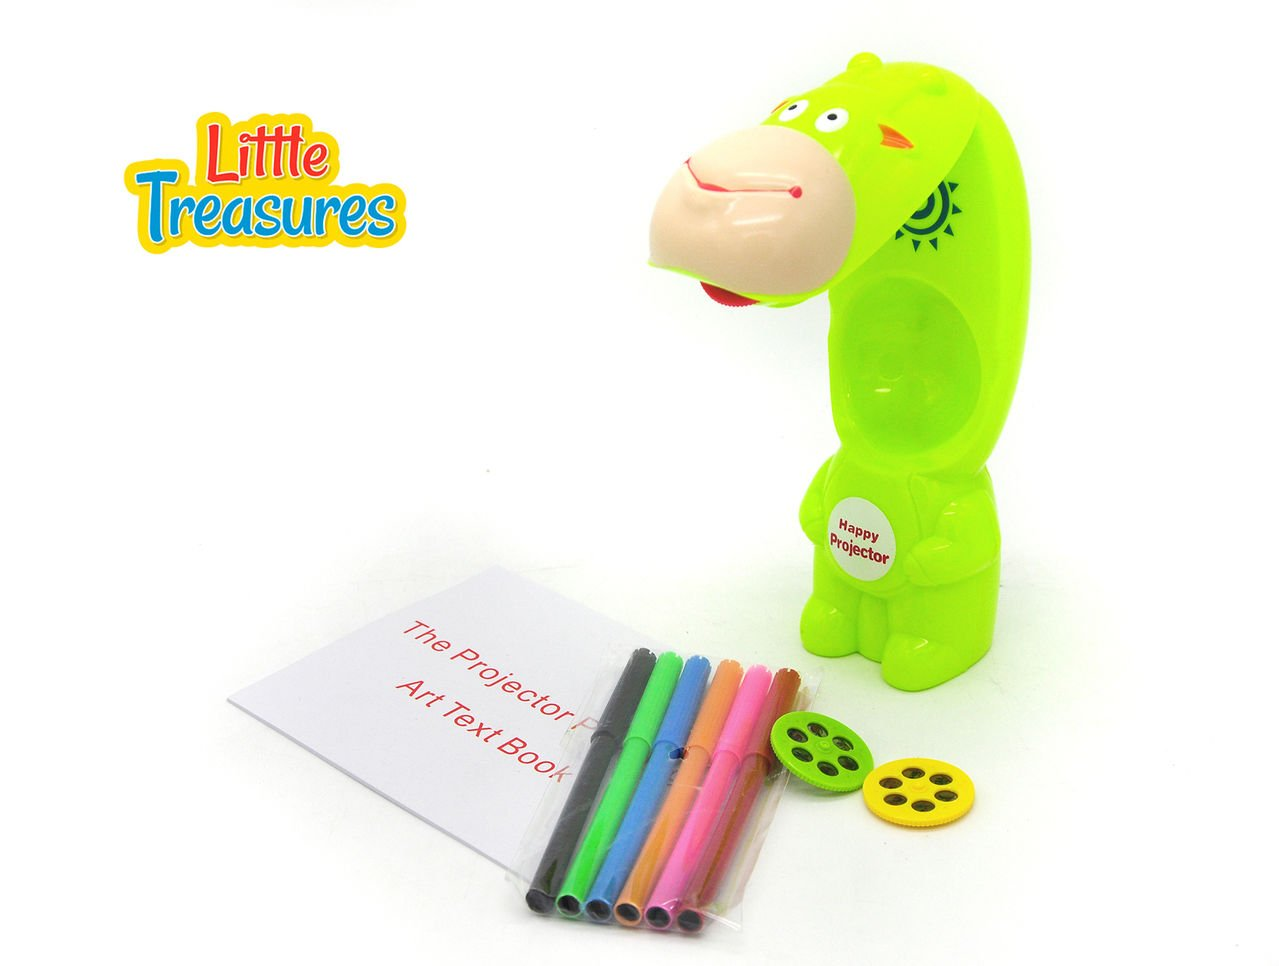 Little Treasures 3 In 1 Projection Painting Table Lamp to help Kids Learn to Draw and Trace to become Artists